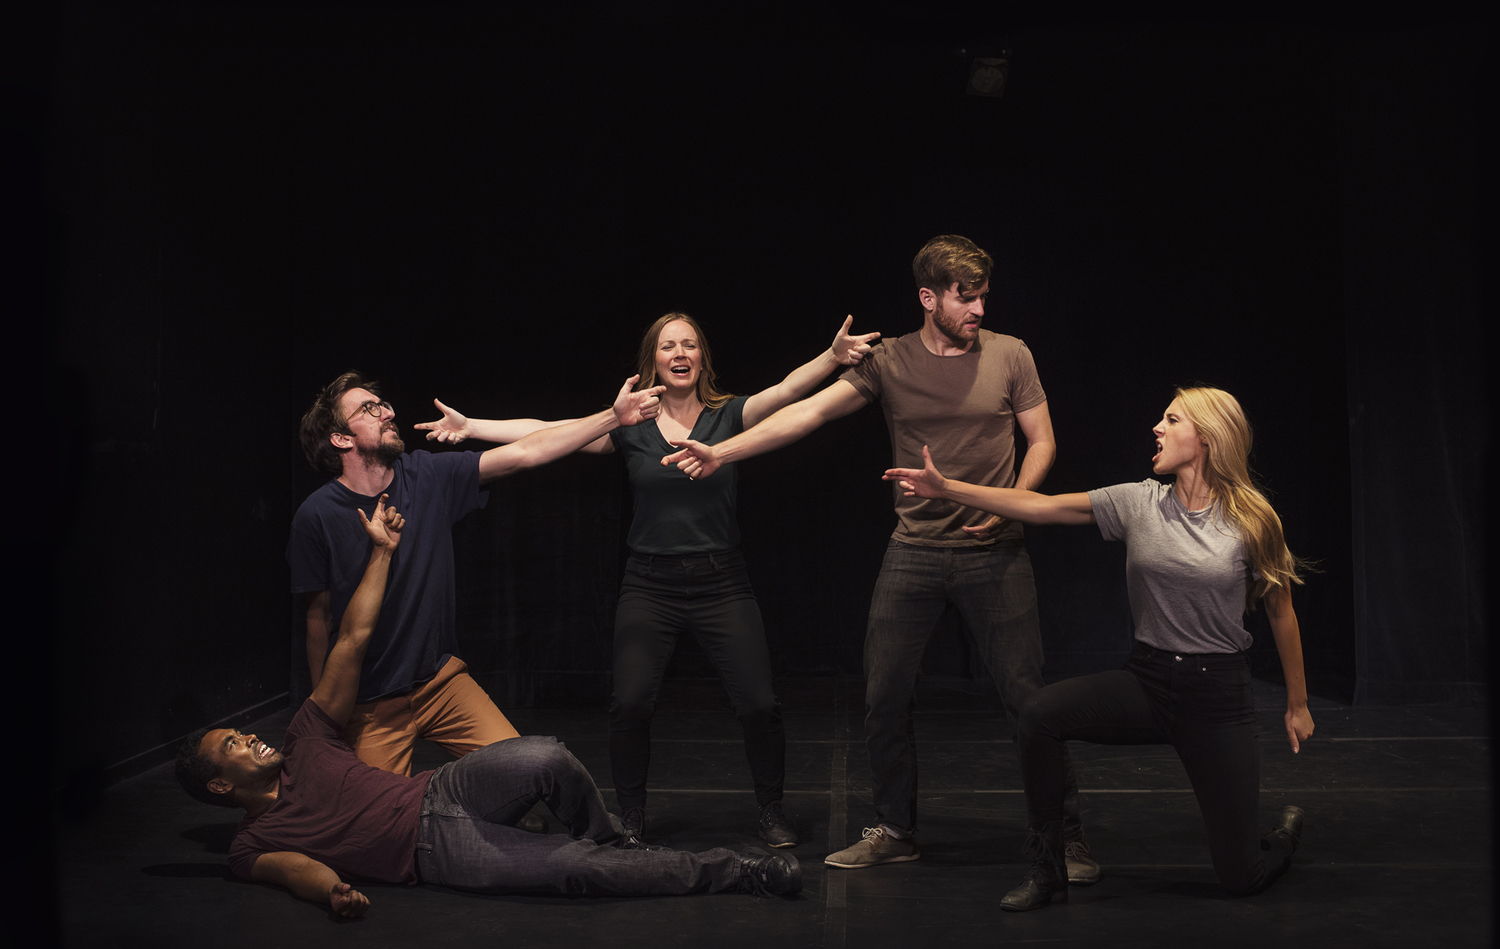 BWW Review: THE ADVENTURES OF TOM SHADOW is a Fairy Tale Gone Hilariously Awry